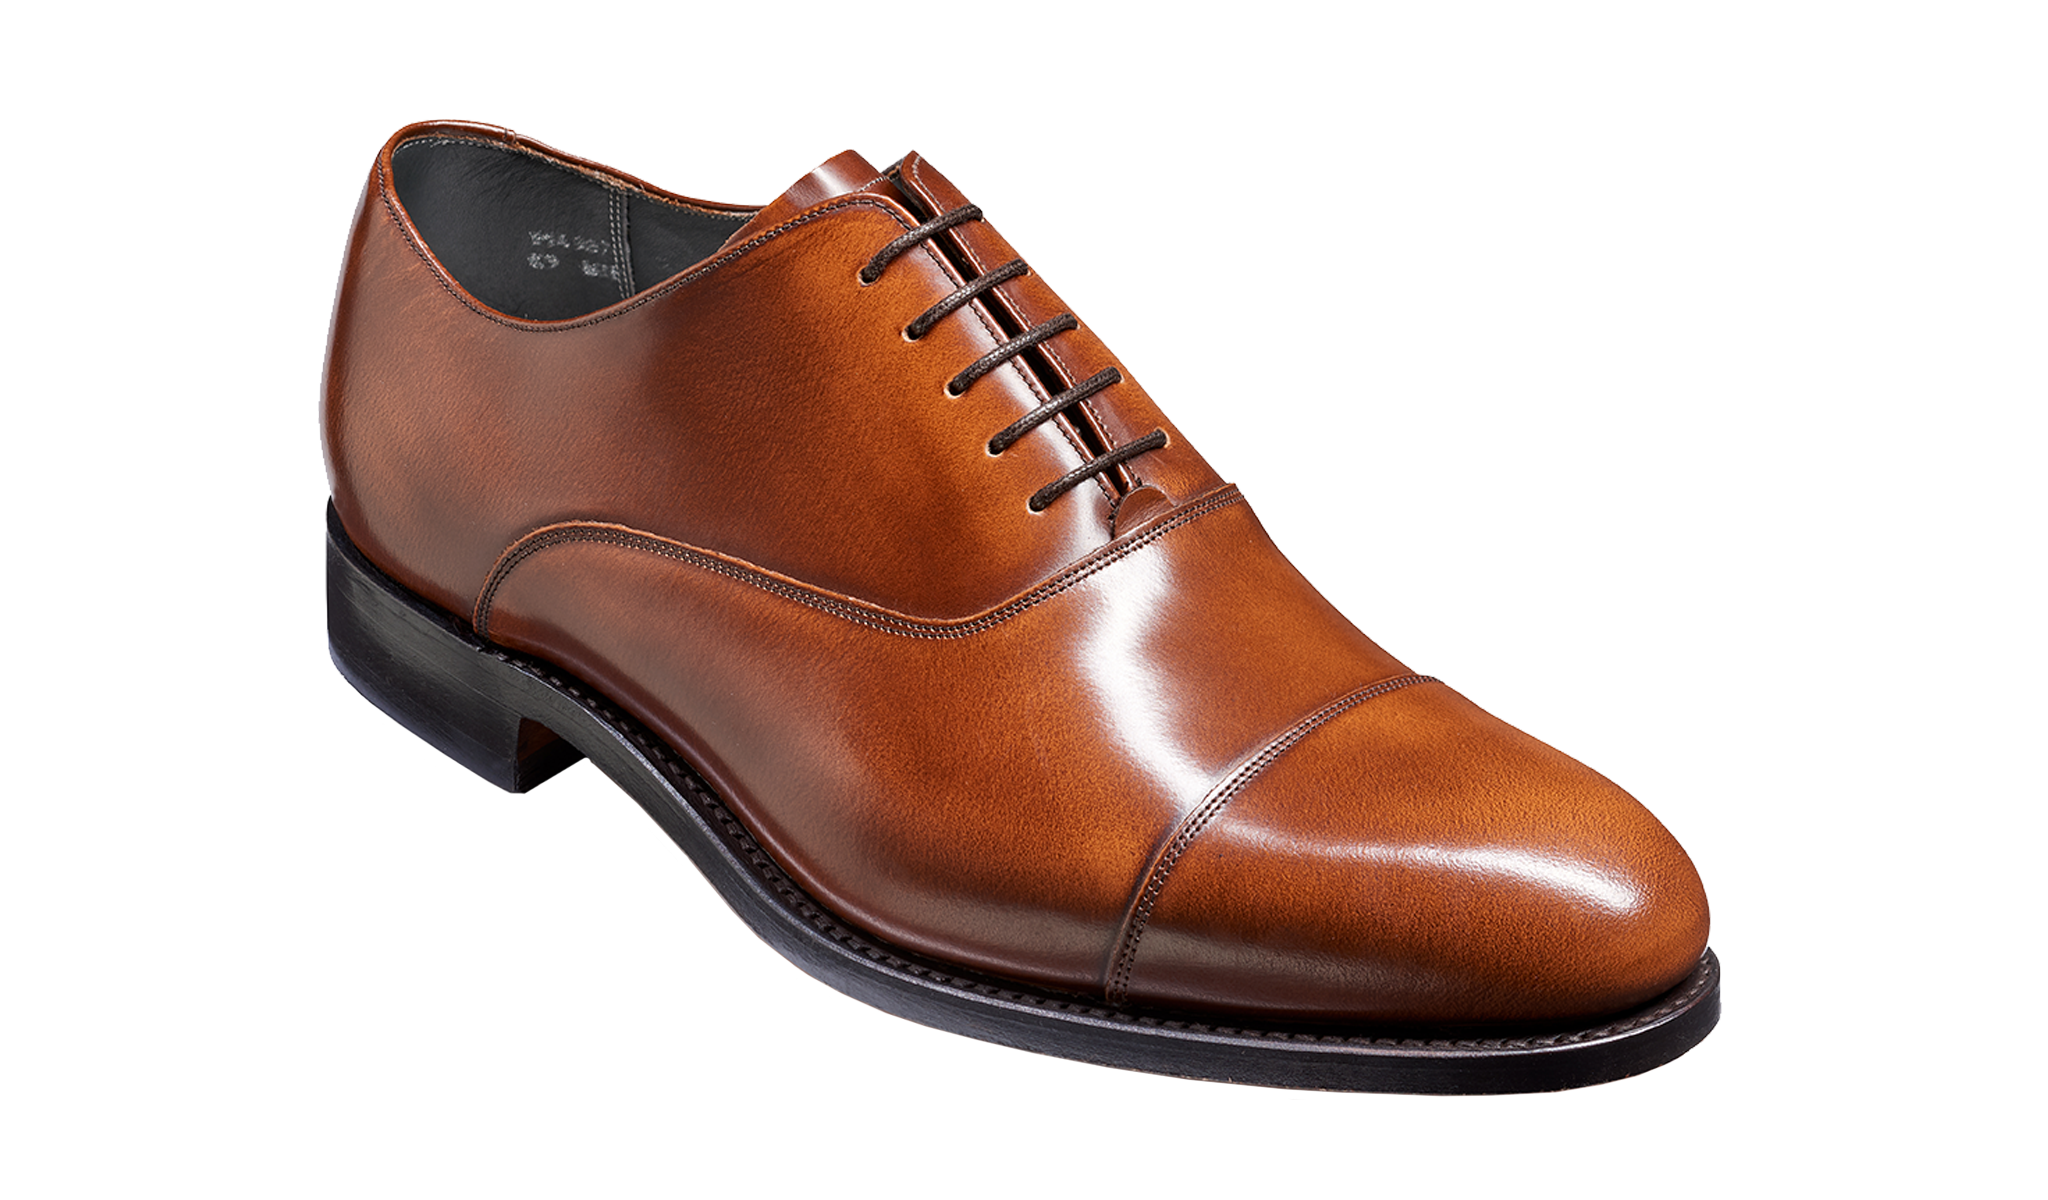 Winsford - Men's brown oxford shoe.